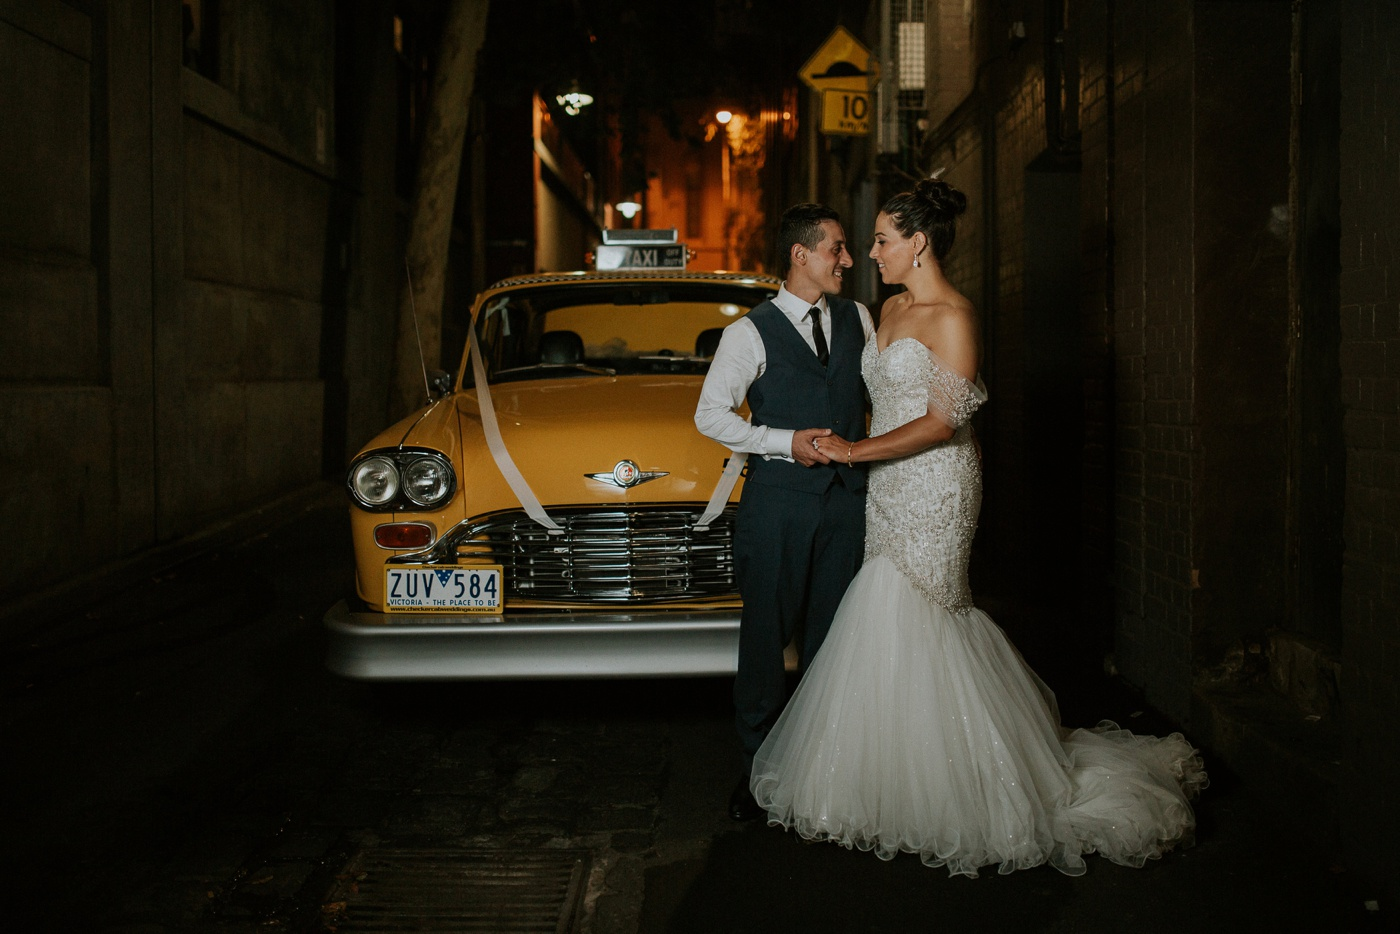 Jackie&Mo_Melbourne-Wedding-Photography_Elegant-Relaxed-Urban_Blog-37